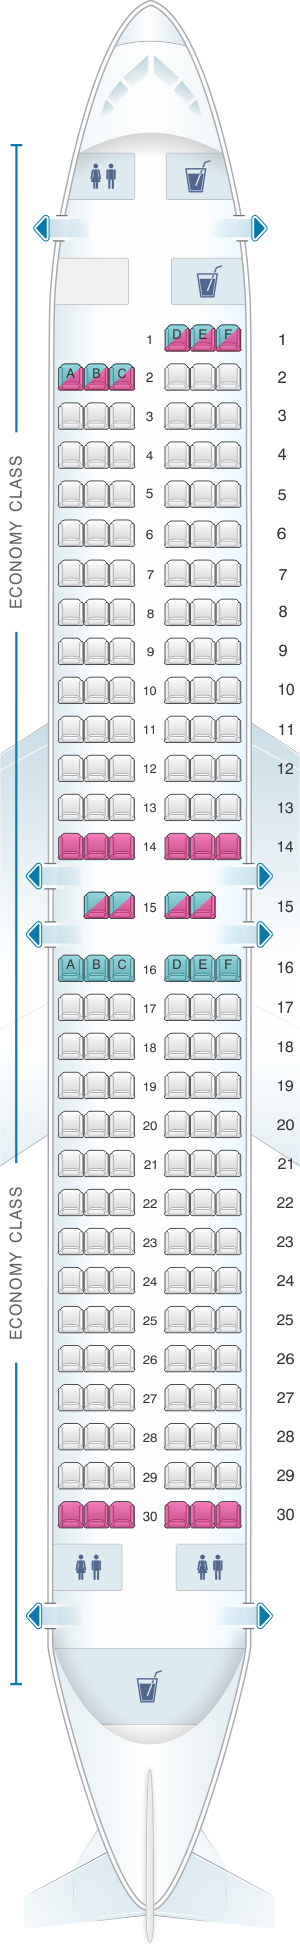 Seat map for Southwest Airlines Boeing B737 800 175pax